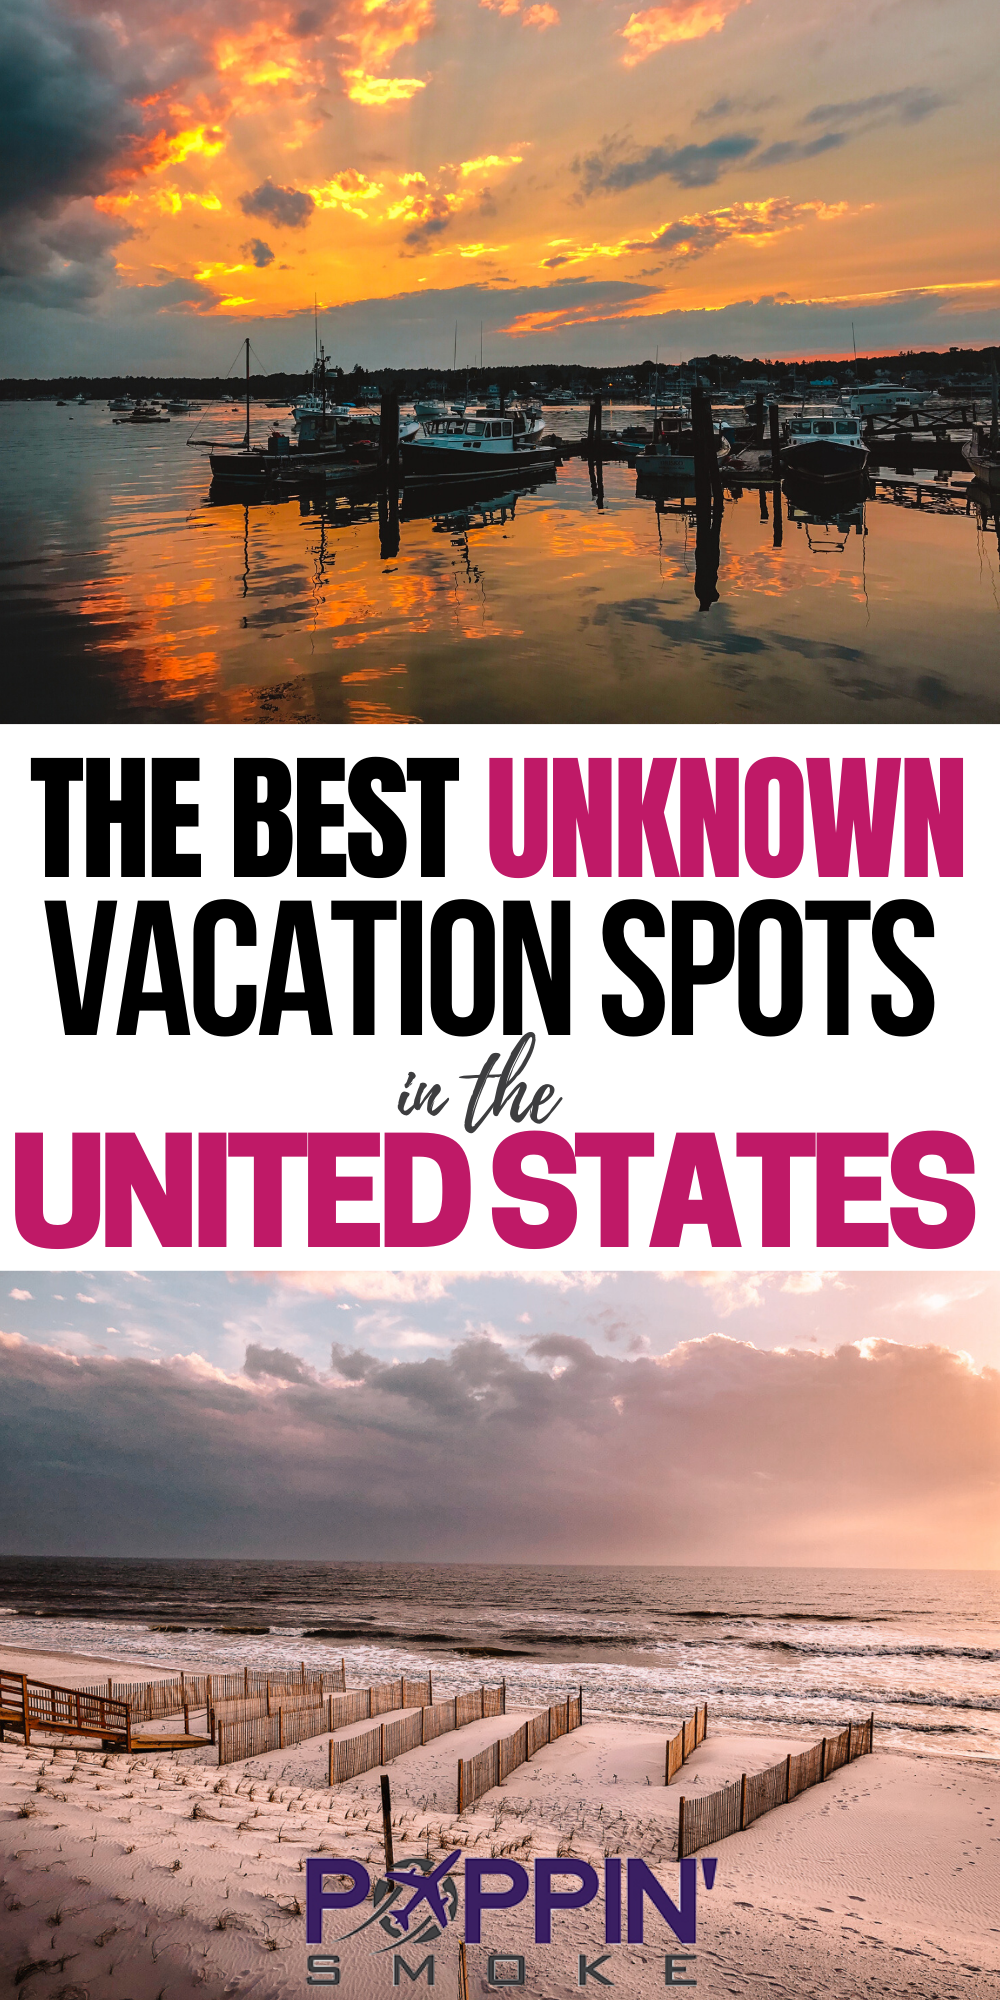 The Best Unknown Vacation Spots in the United Stat